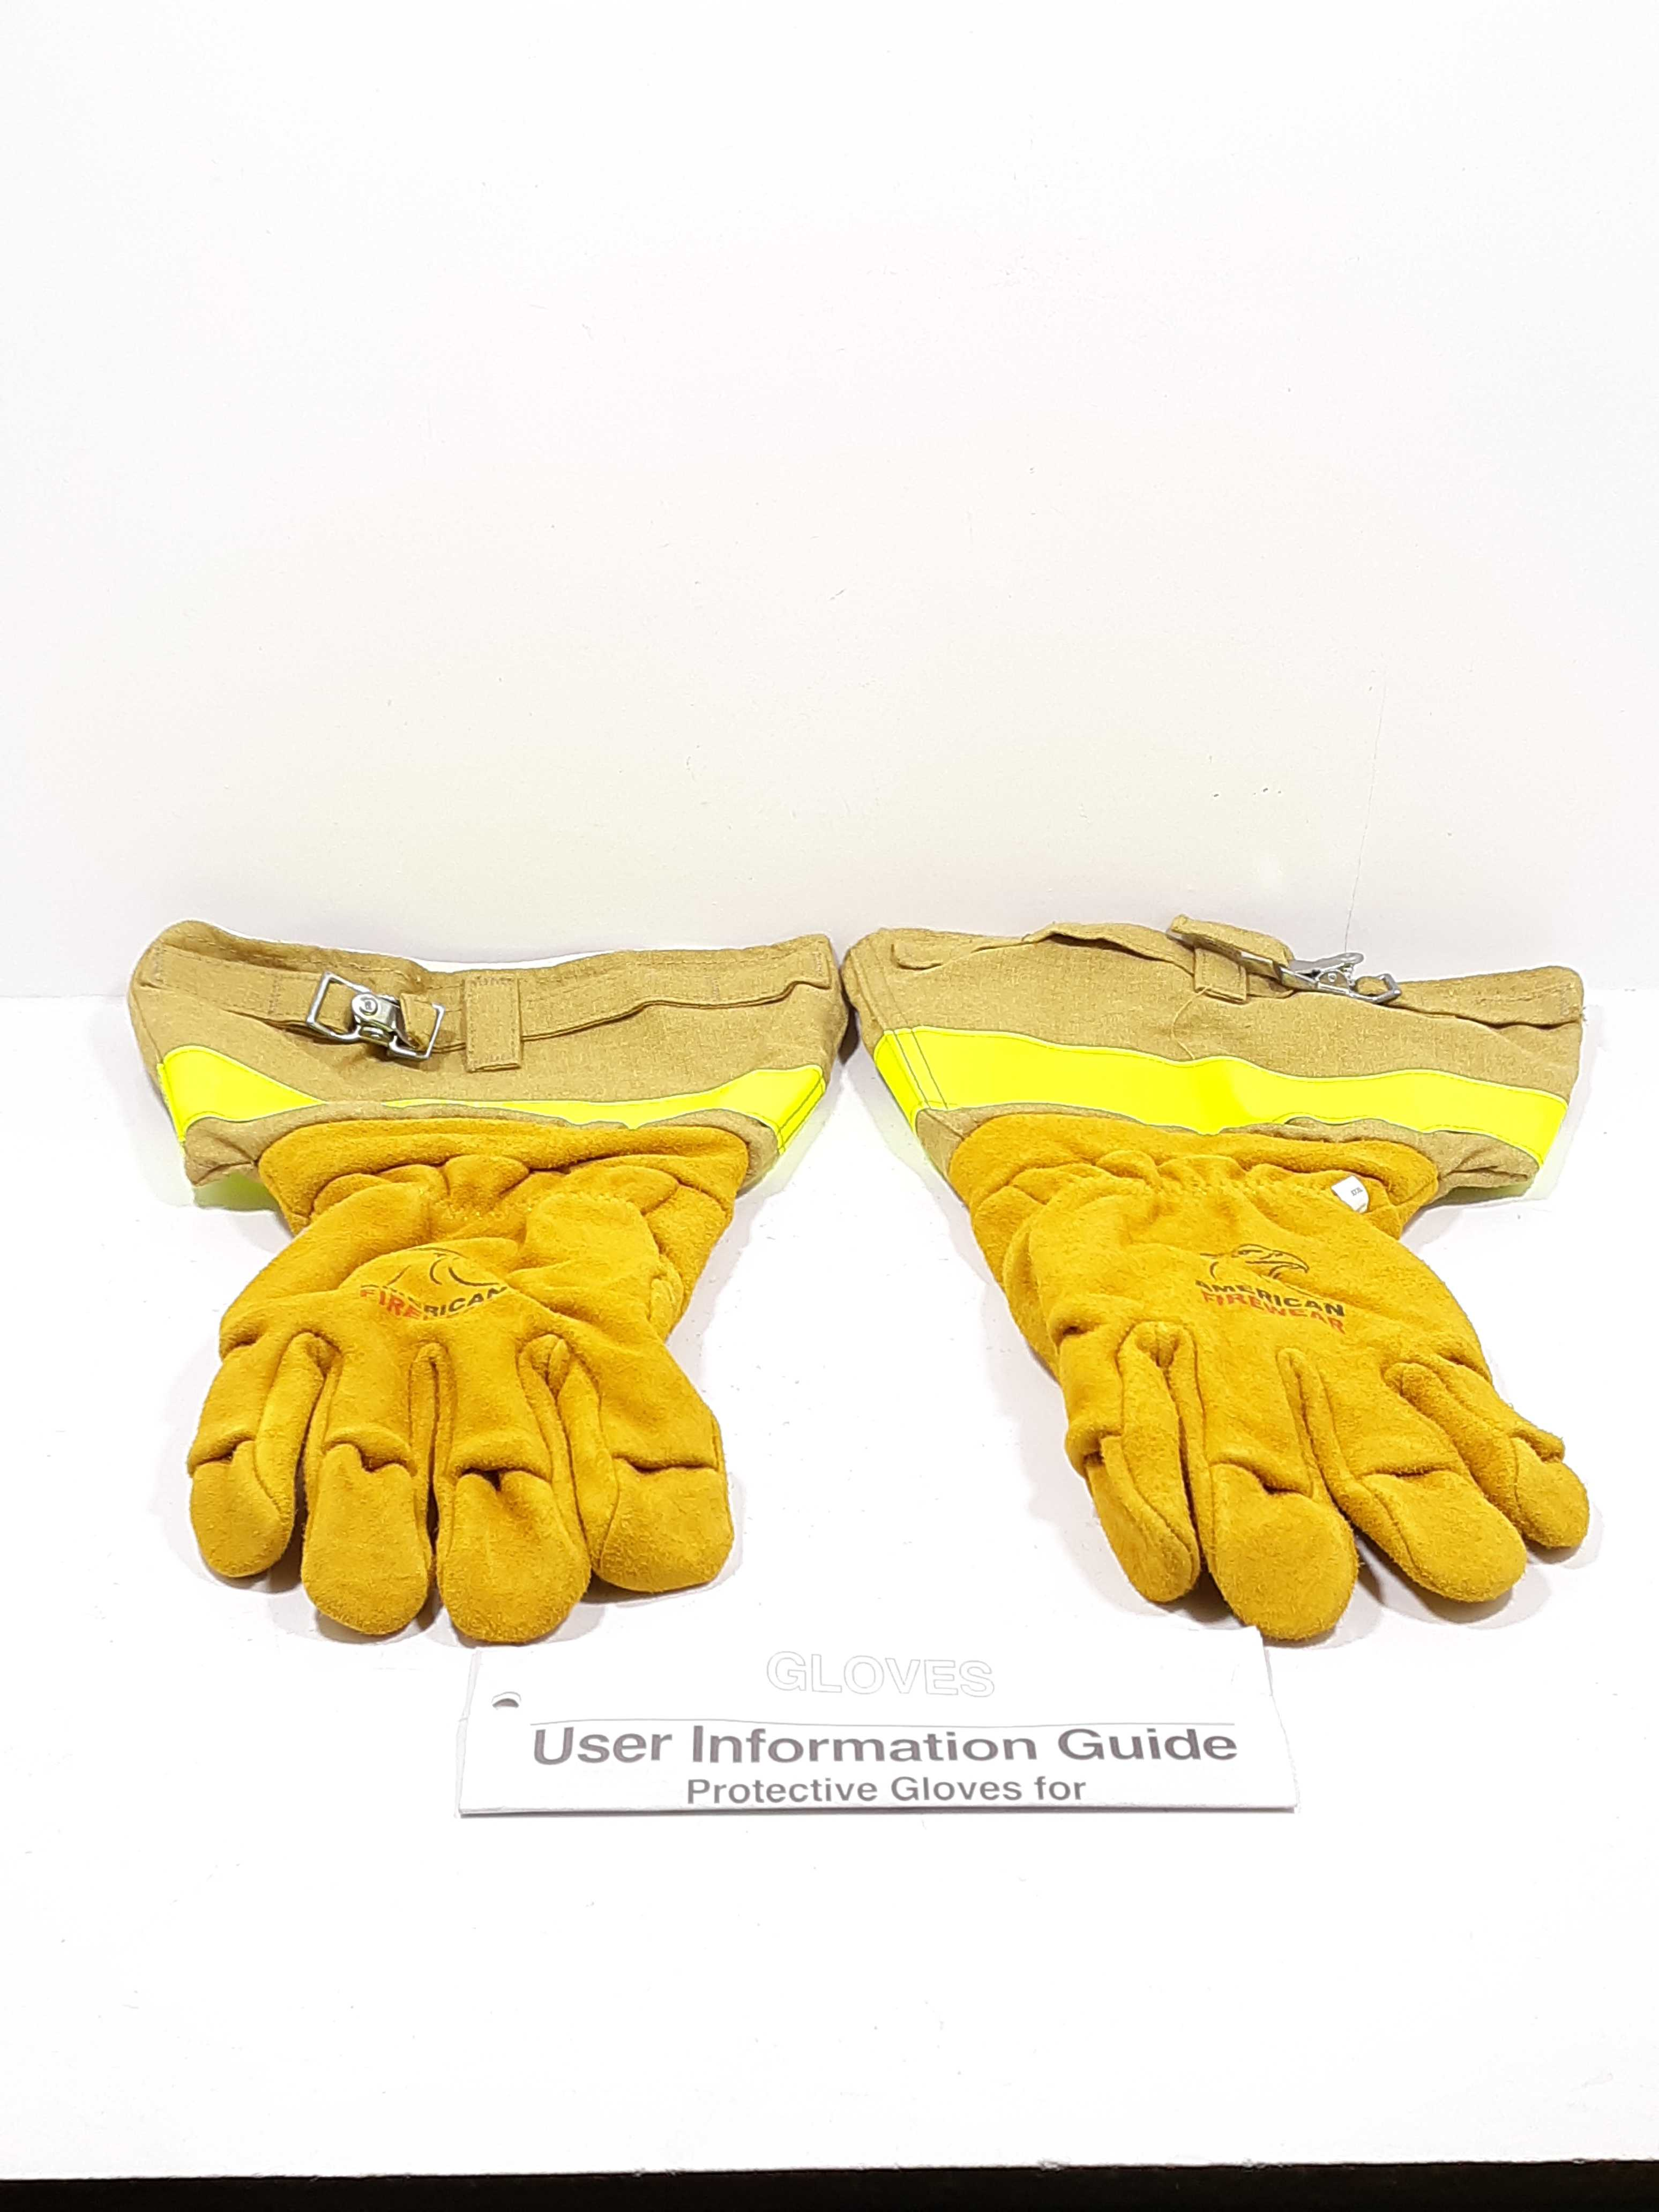 American Firewear GL-HNO-EGGS-M-3XL Sleevemate  Firefighting Gloves 3XL